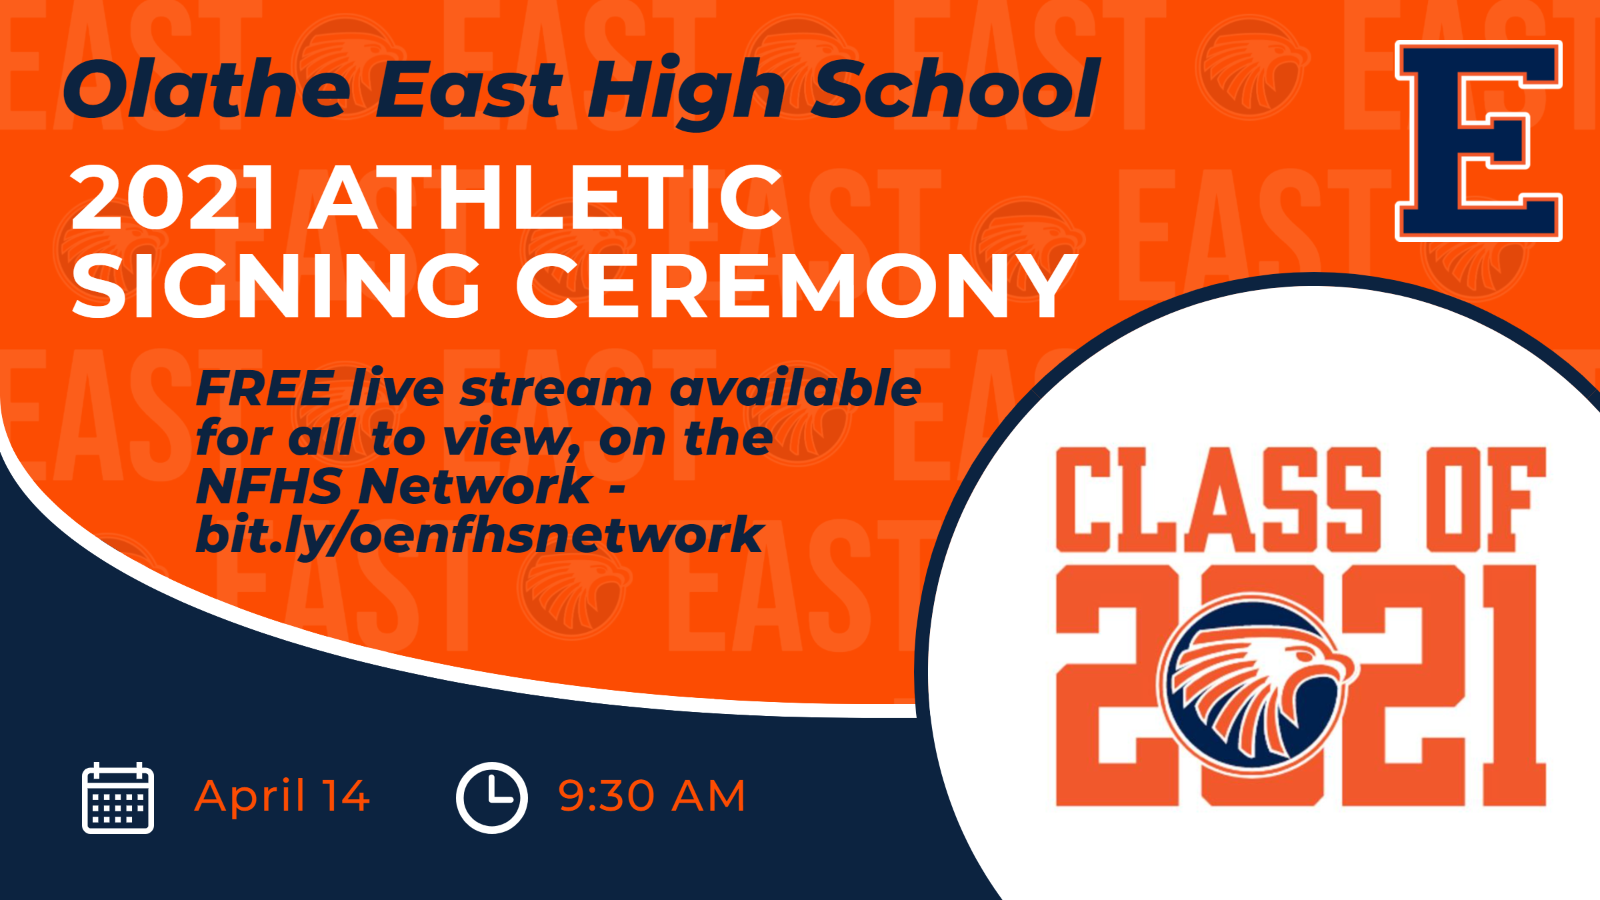 Join virtually for the 2021 OE Athletic Signing Ceremony – TODAY, April 14, 2021 (9:30AM)